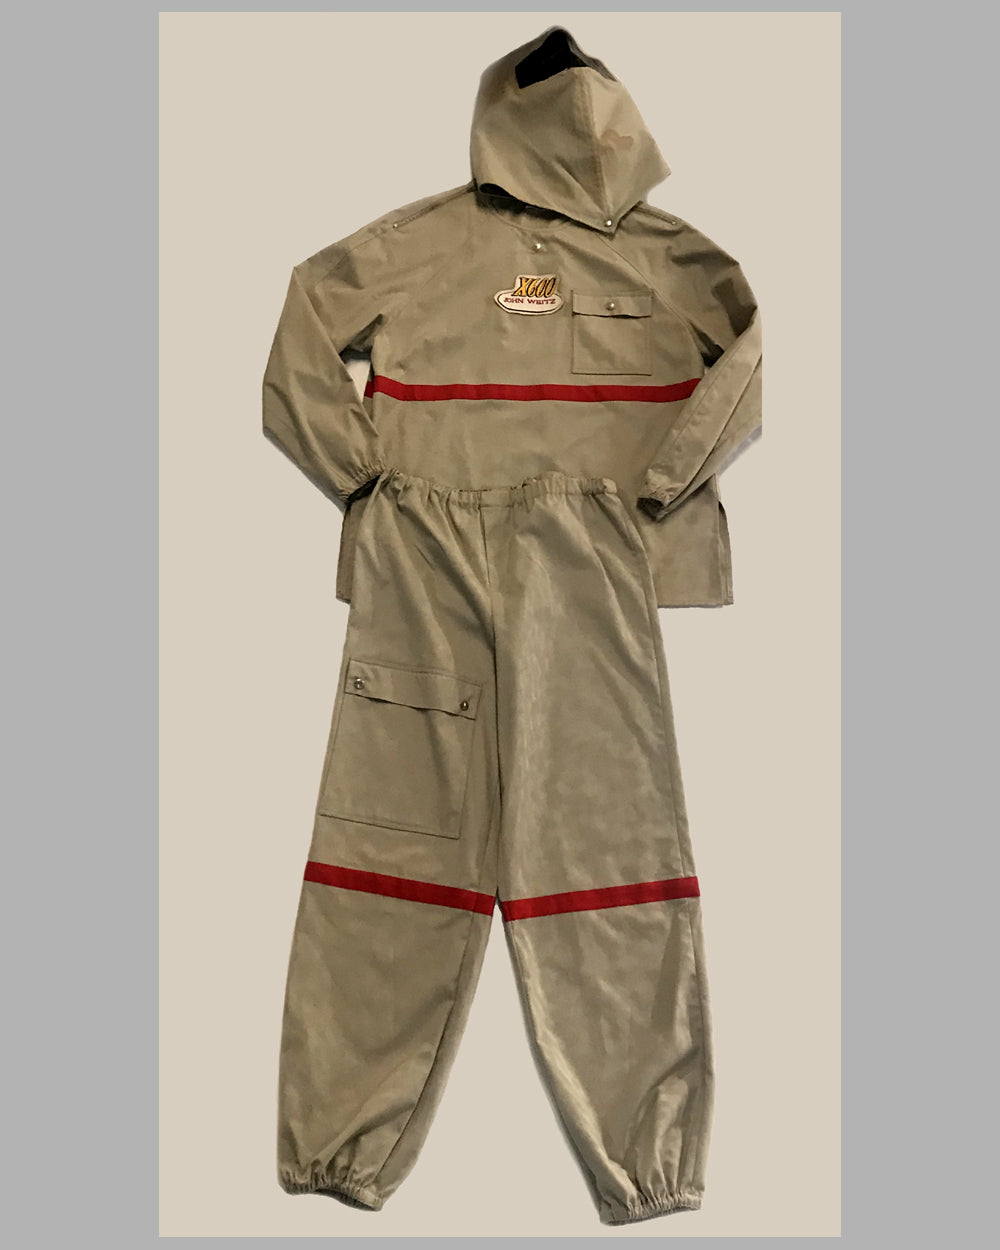 John Weitz prototype driving suit